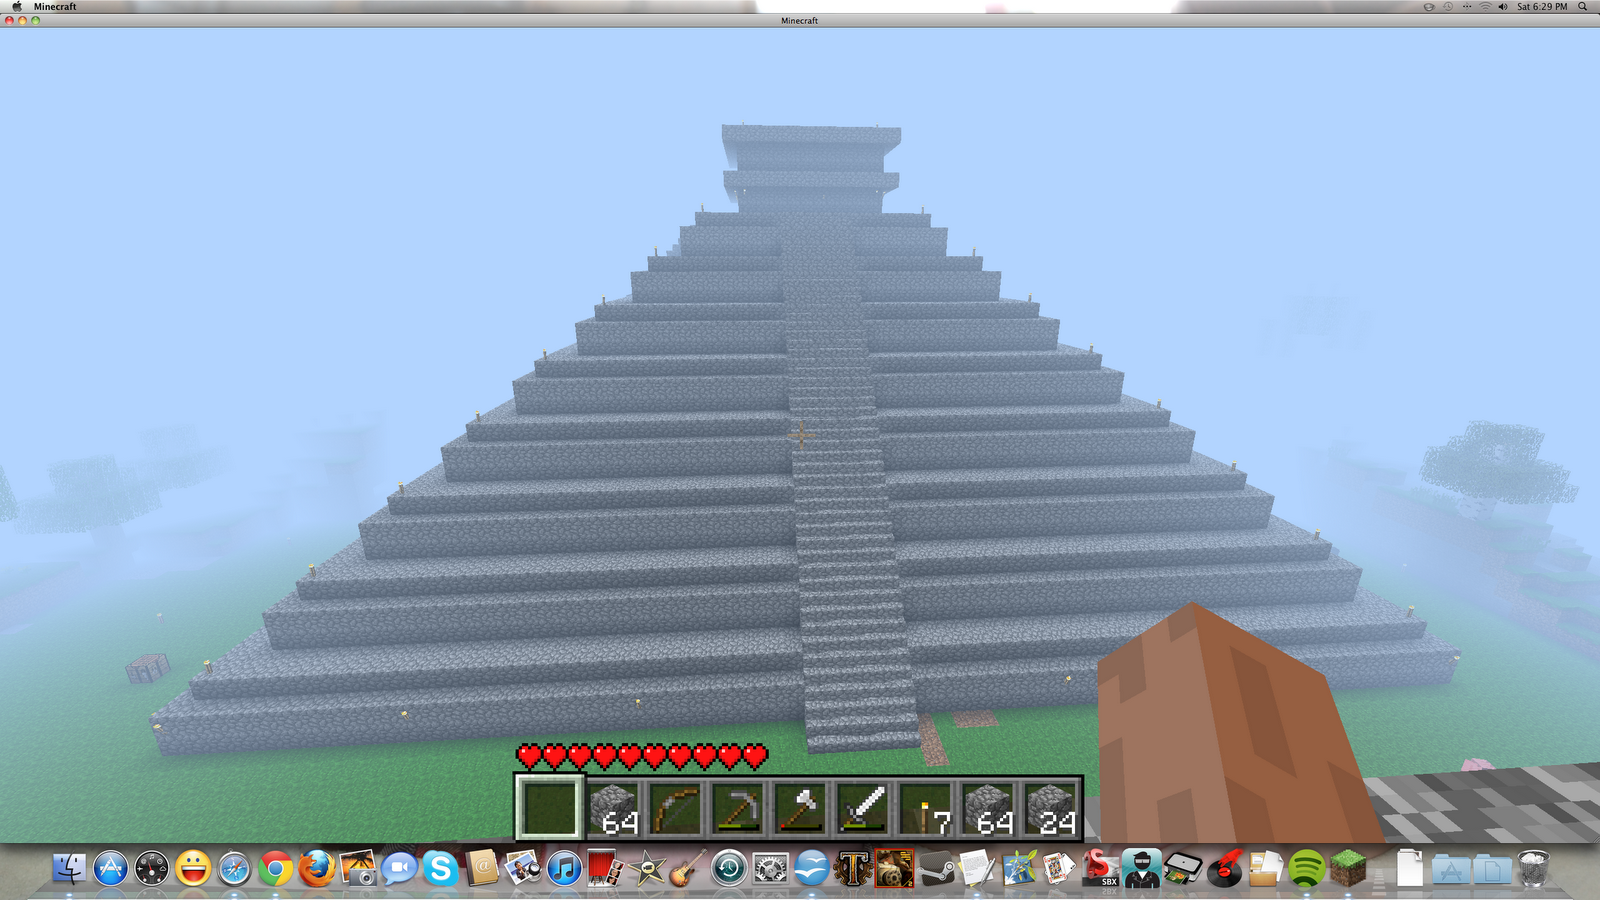 So i ve been playing a ton of minecraft lately i would love to try the